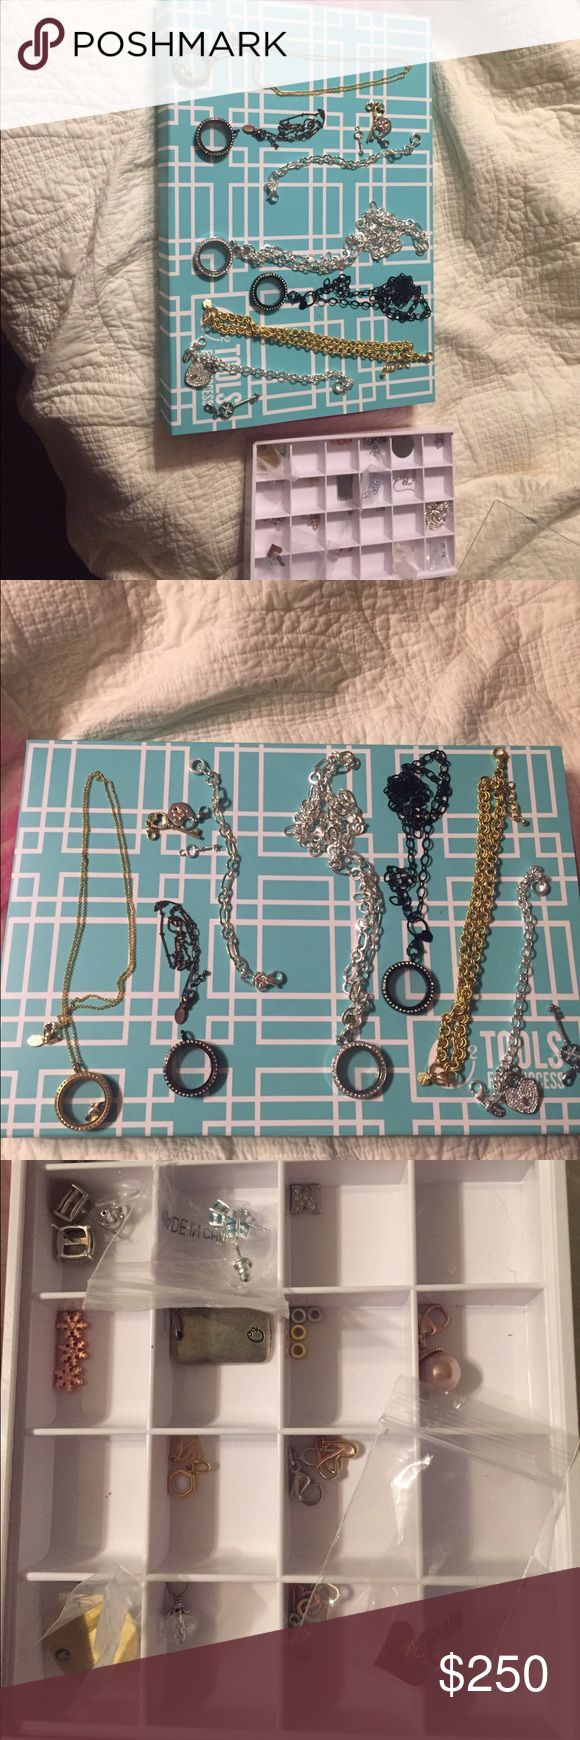 ⭐️⭐️LAST CHANCE ⭐️⭐️Origami Owl lot. Brand new! All pieces are new. 4 lockets with matching chain. 2 bracelets with heart and key charms. 1 gold choker chain. Various charms, spacers, dangles and earrings in the white tray.  Comes with the white tray.  Retails for over $450. Open to reasonable offers.  This is the last chance to make an offer. I am taking to local consignment next week. So make your offers now! Origami Owl Jewelry